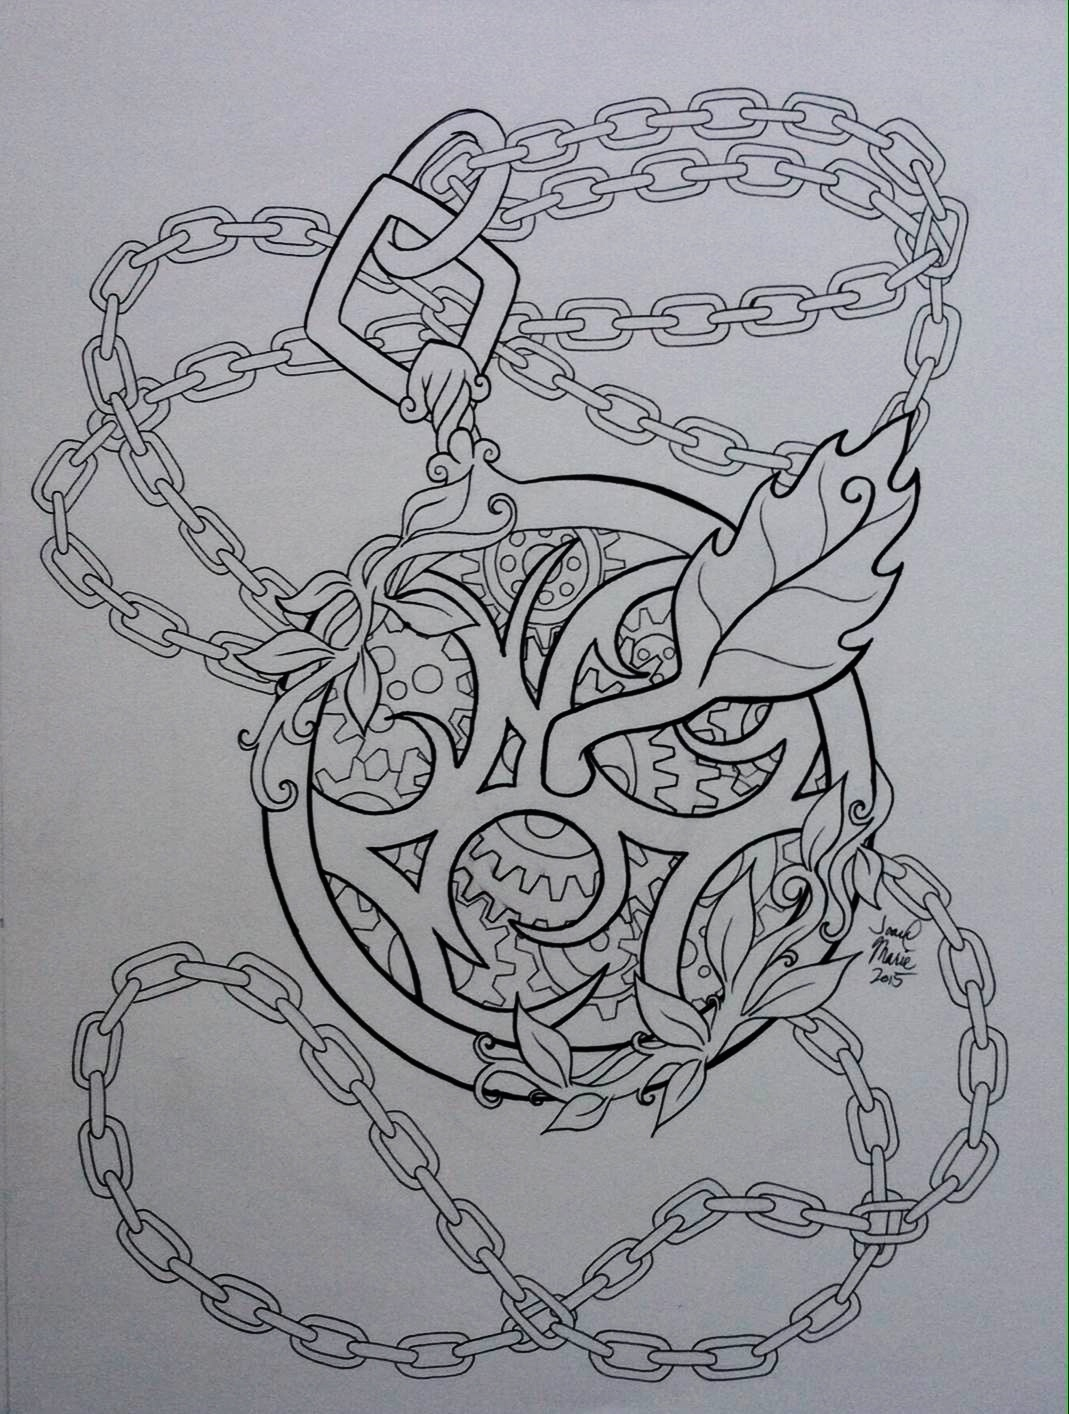 Pendant, 2015, 12x16, Pen and Ink